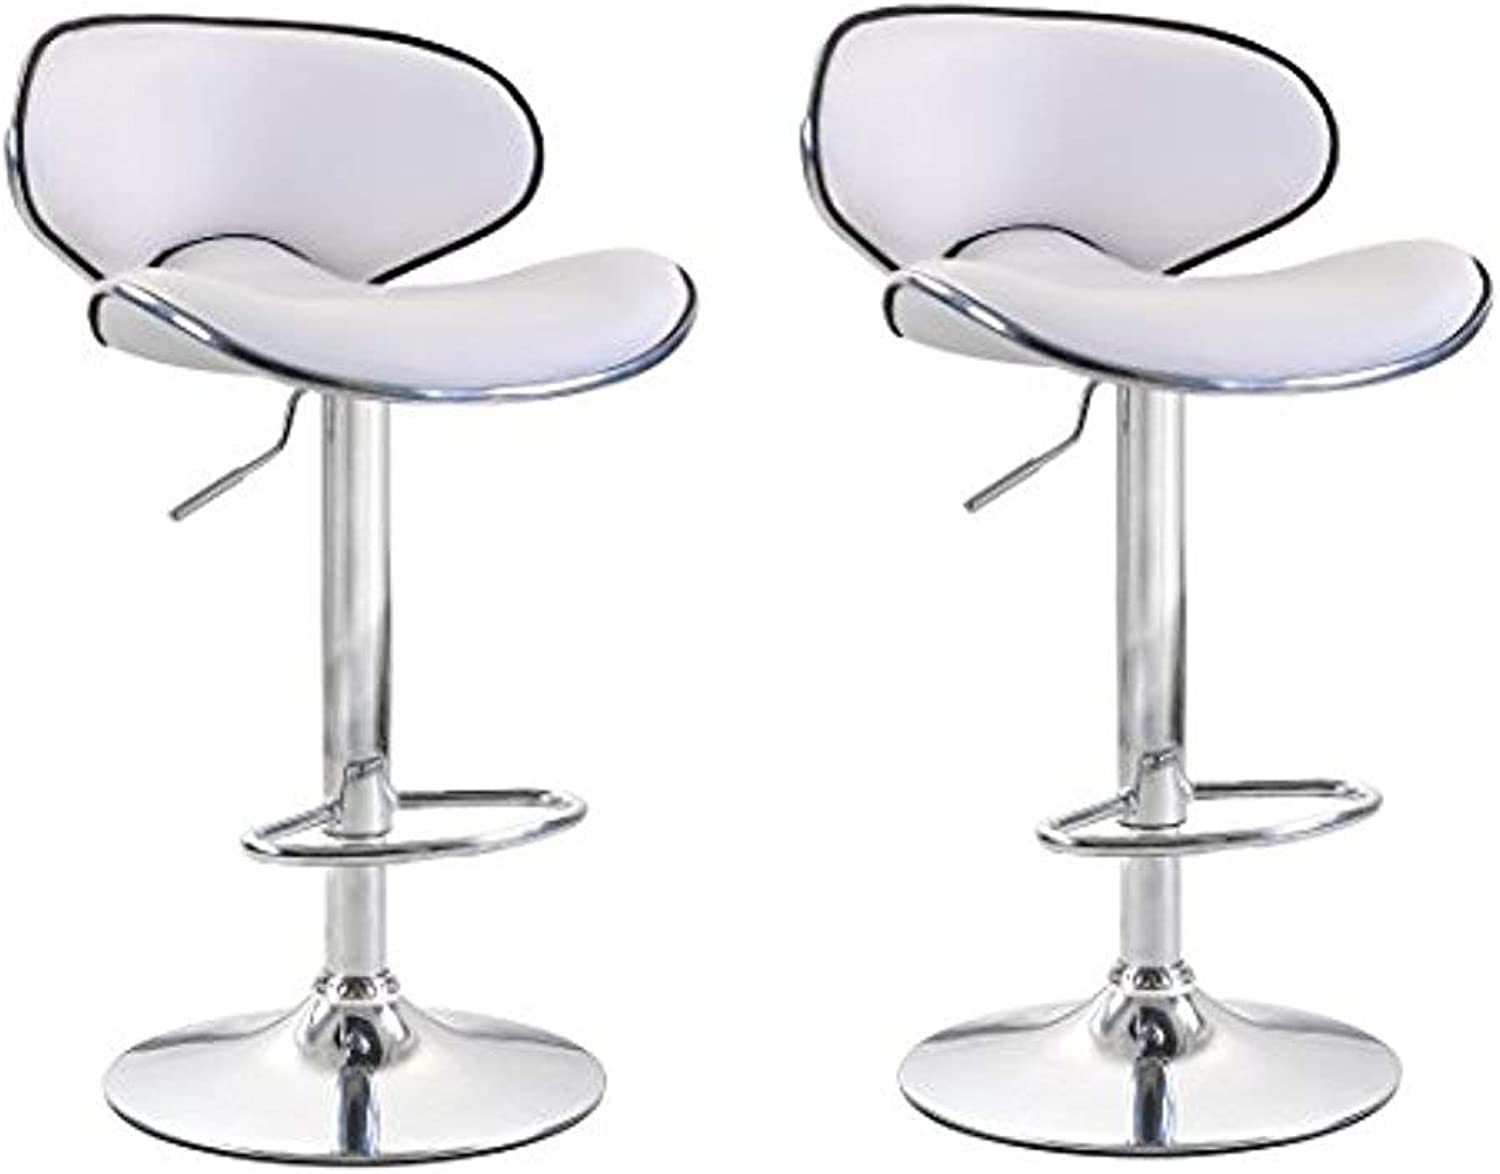 ViscoLogic Series Oasis Height Adjustable Leatherette Saddle Style Seat and High Back Rest 360 Swivel 24 to 33 inch Bar Stool with Chrome Pole & Base with Hard Floor Predection Plastic (Set of 2 Stools) (Matt White)